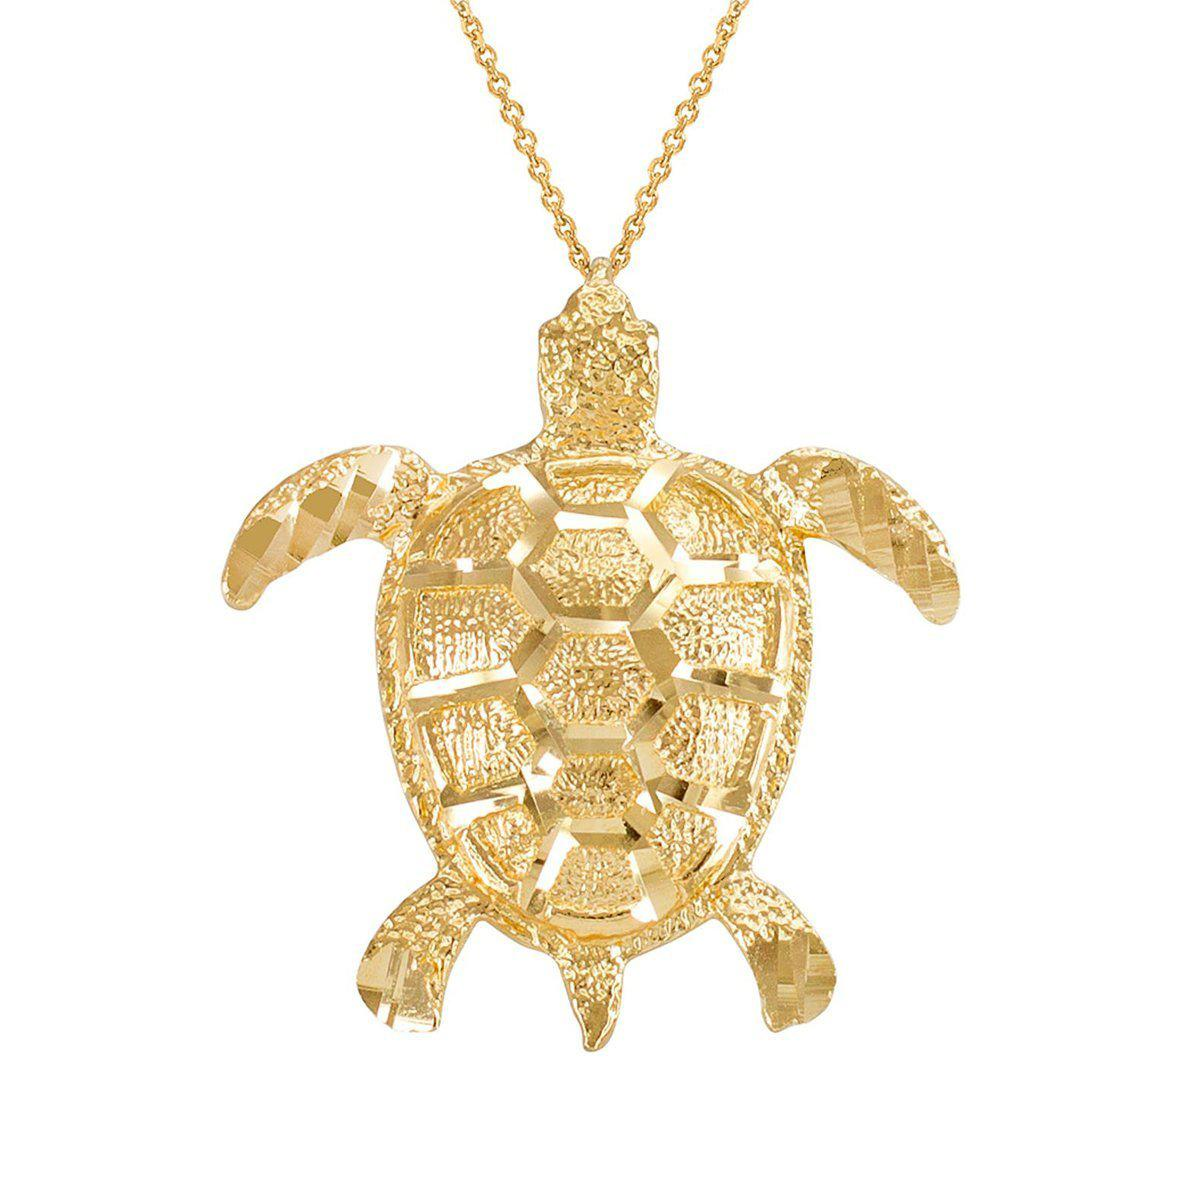 Lyst qp jewellers textured style sea turtle pendant necklace in gallery aloadofball Image collections